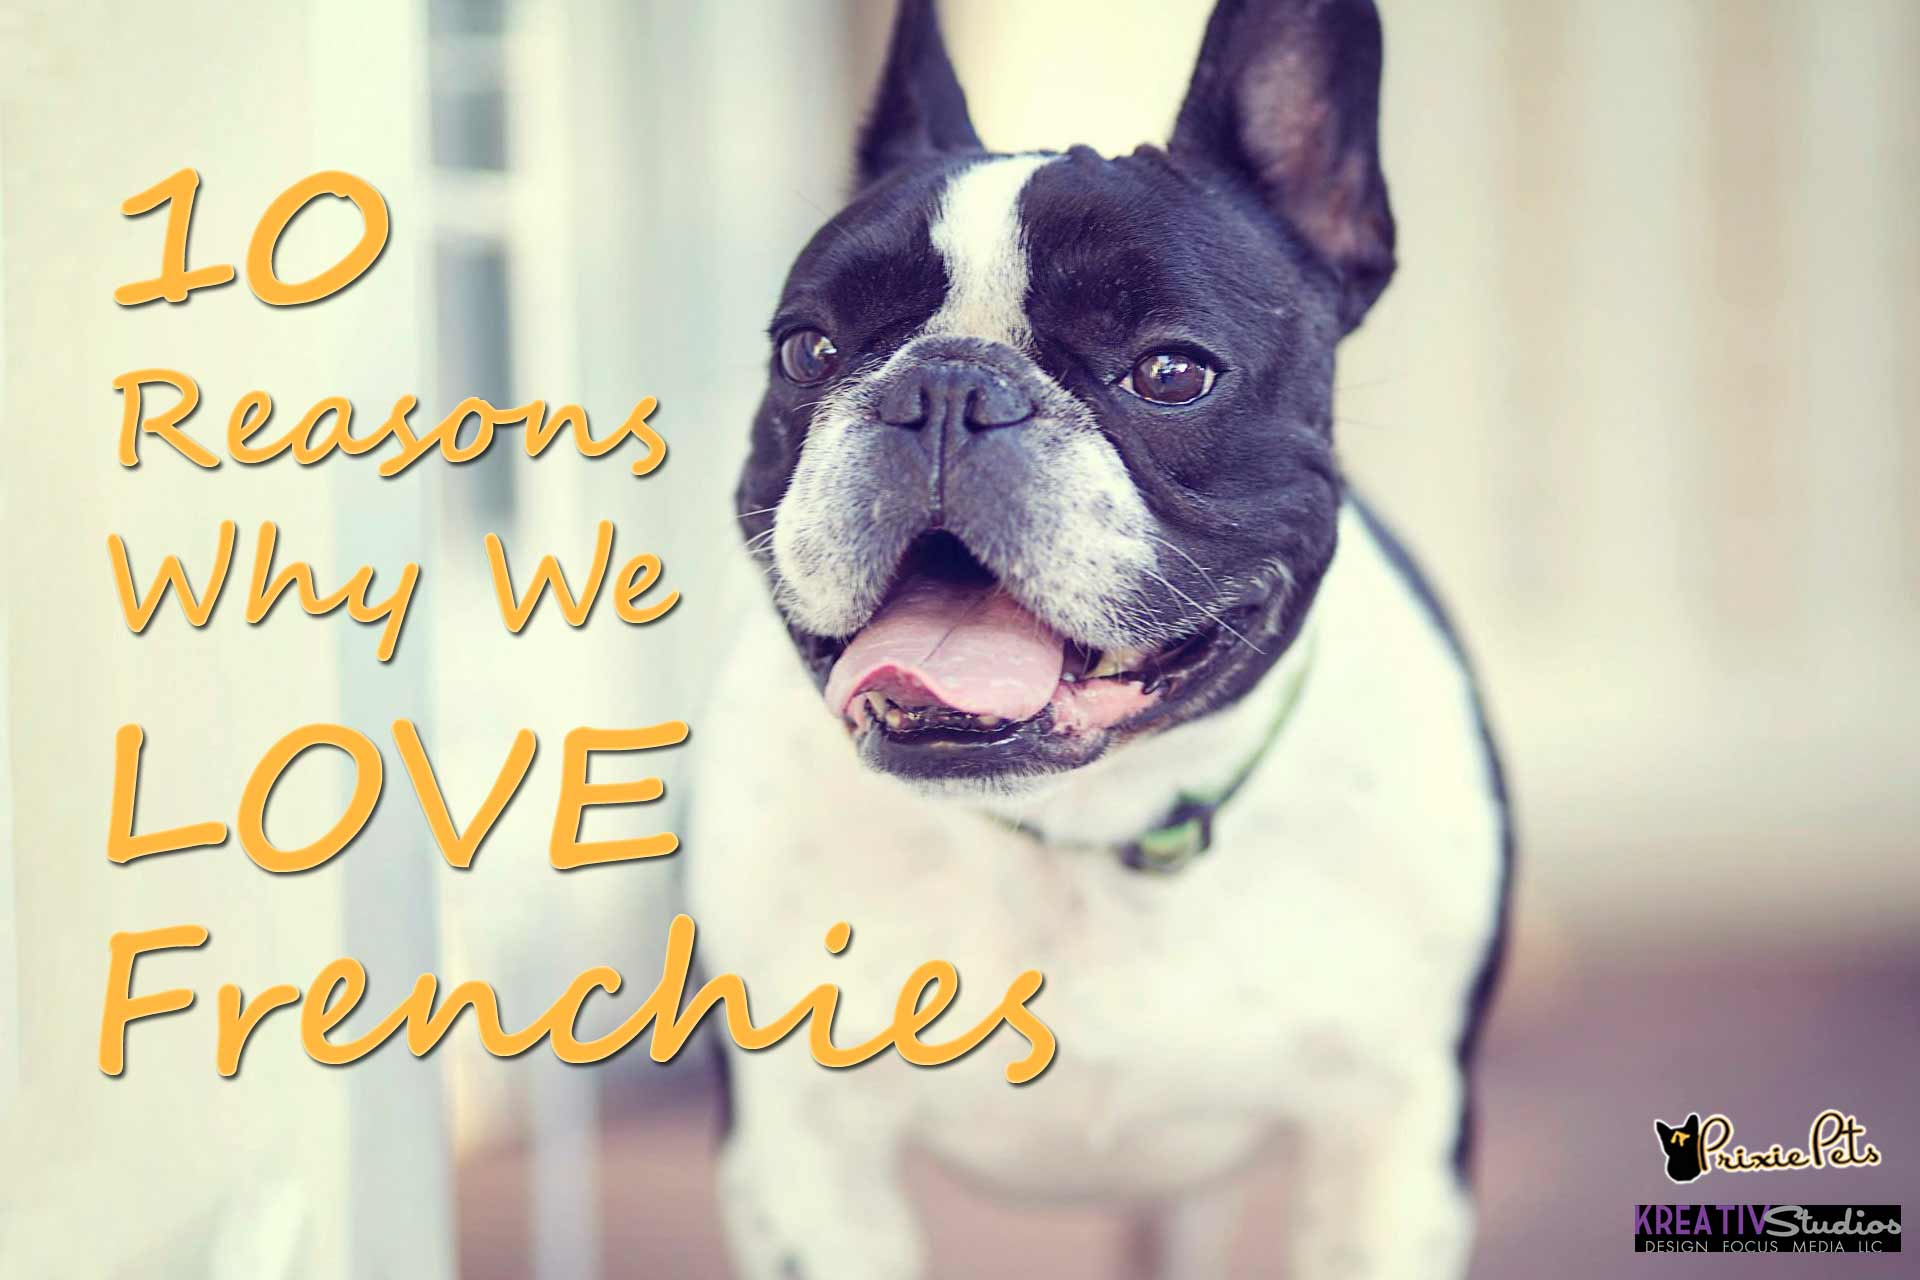 10 Reasons We Love Frenchies